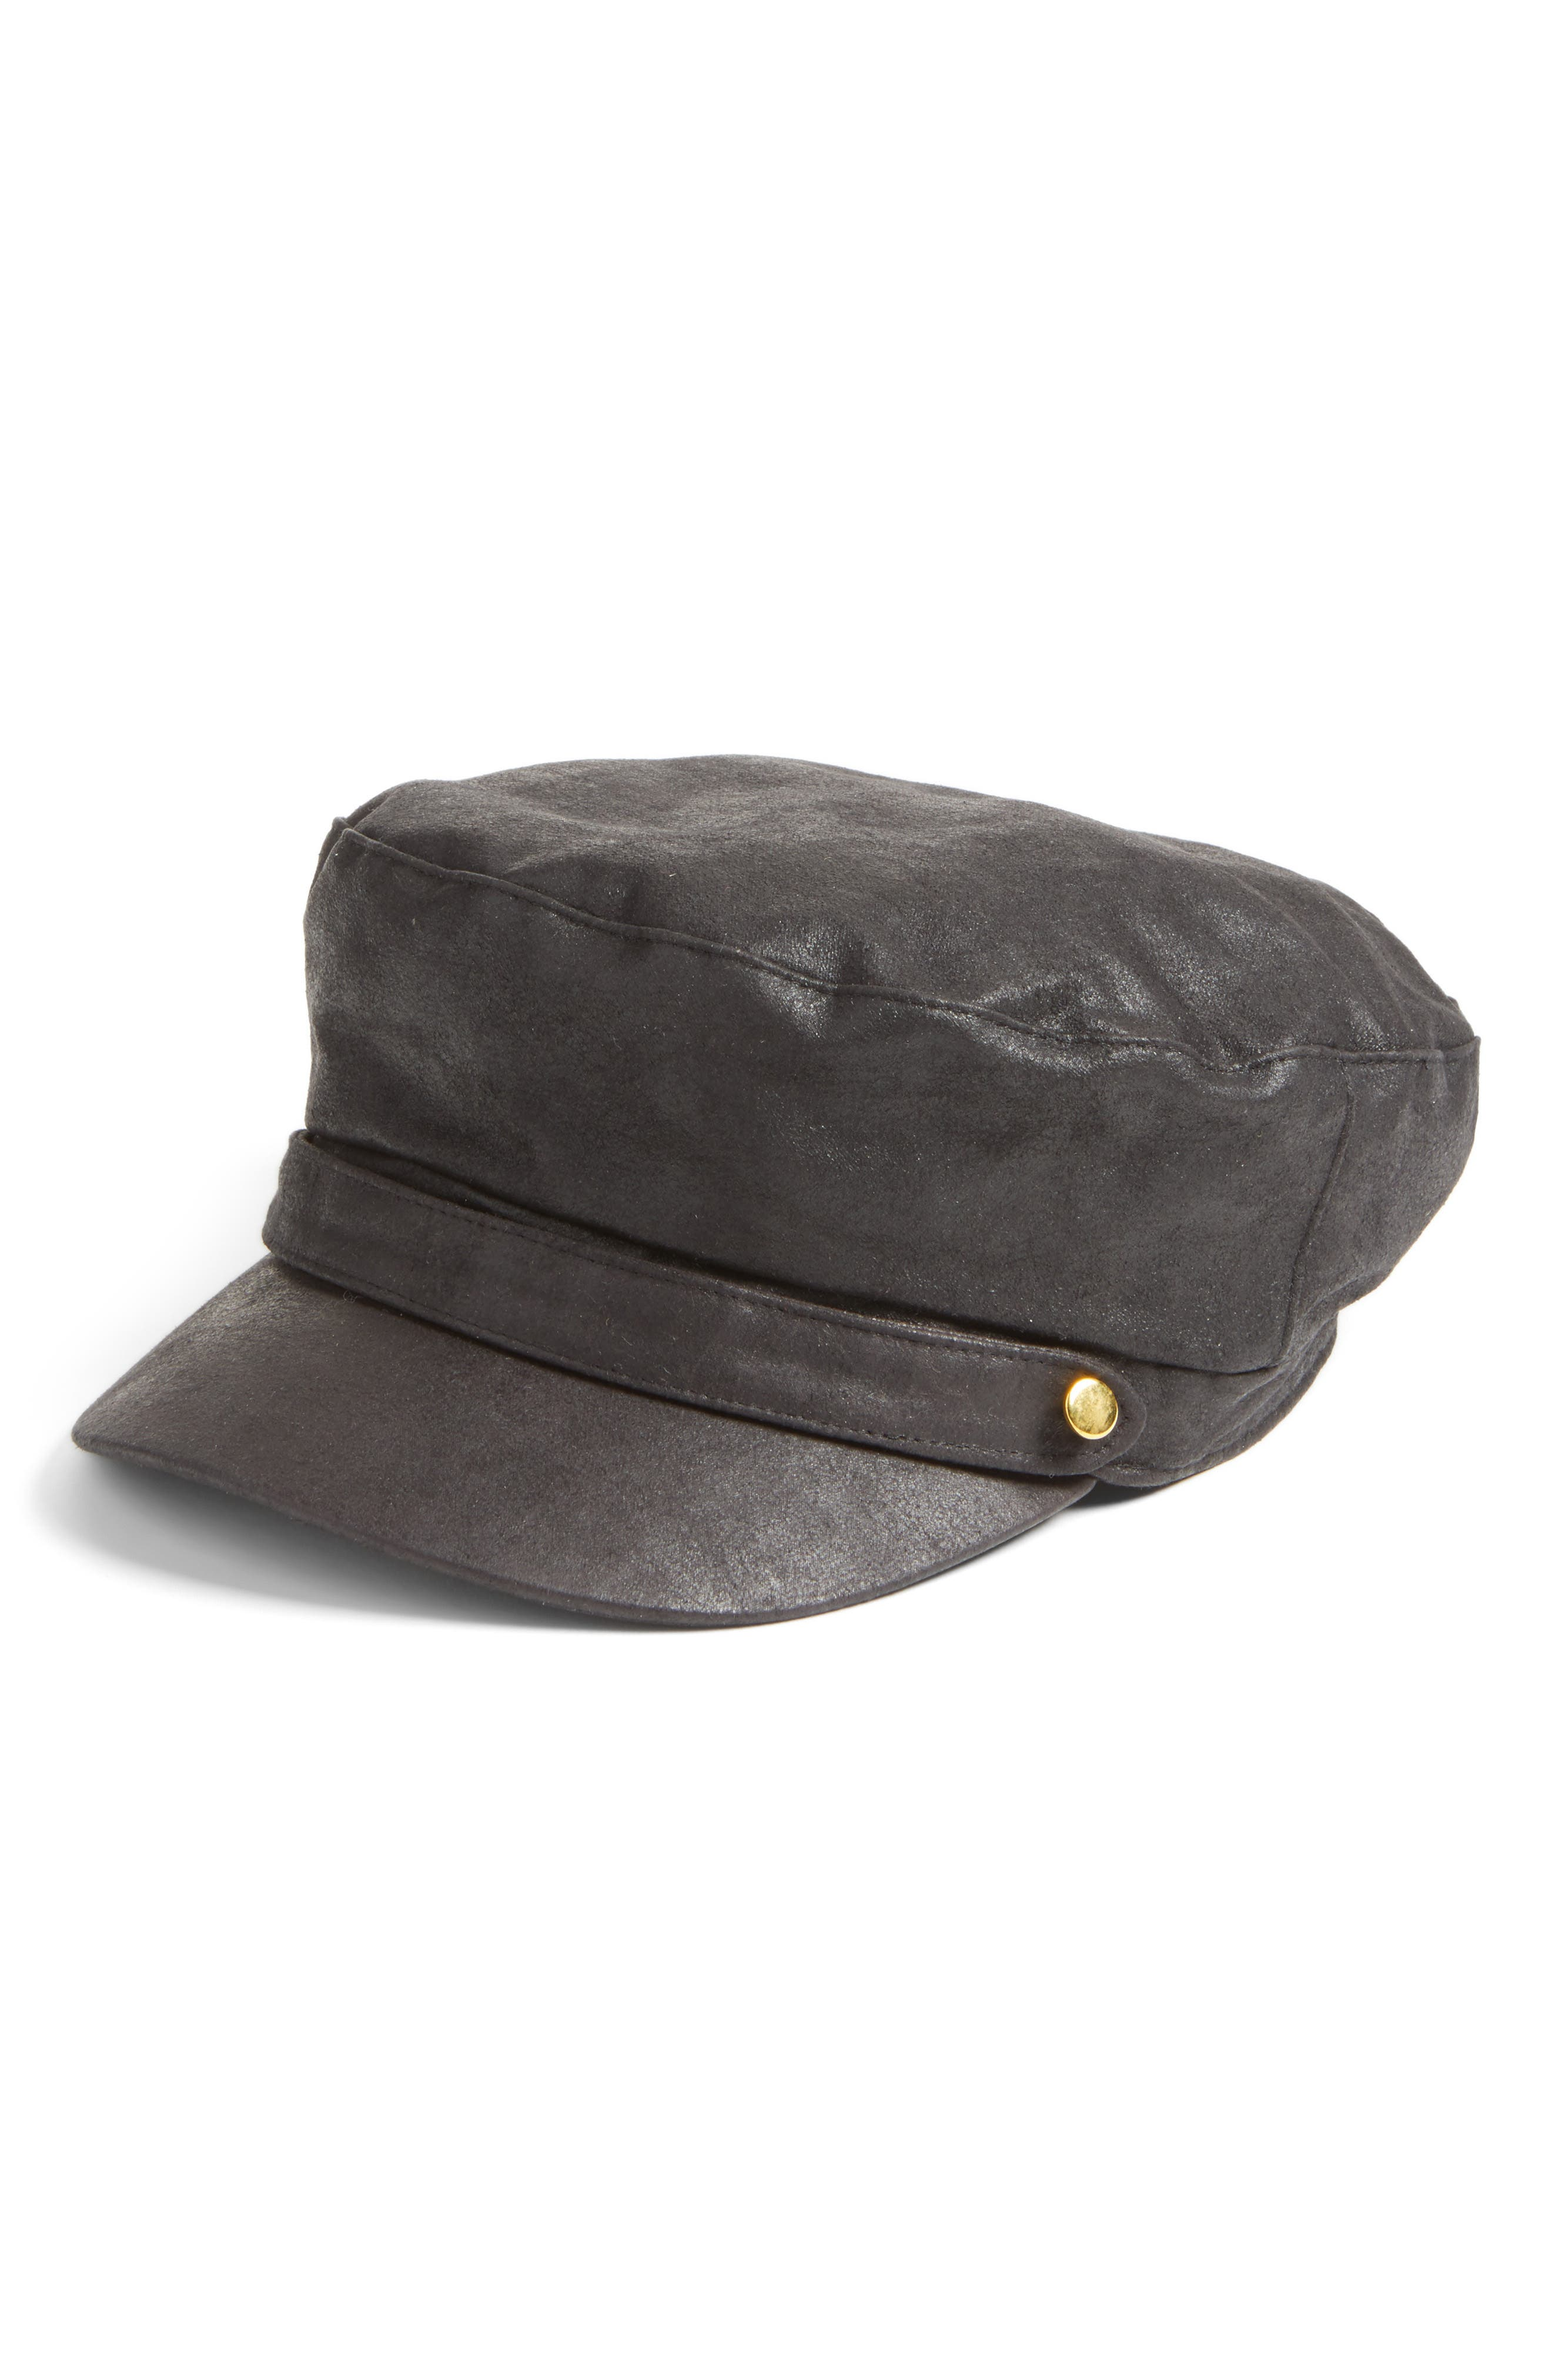 Alternate Image 1 Selected - August Hat Lieutenant Cap